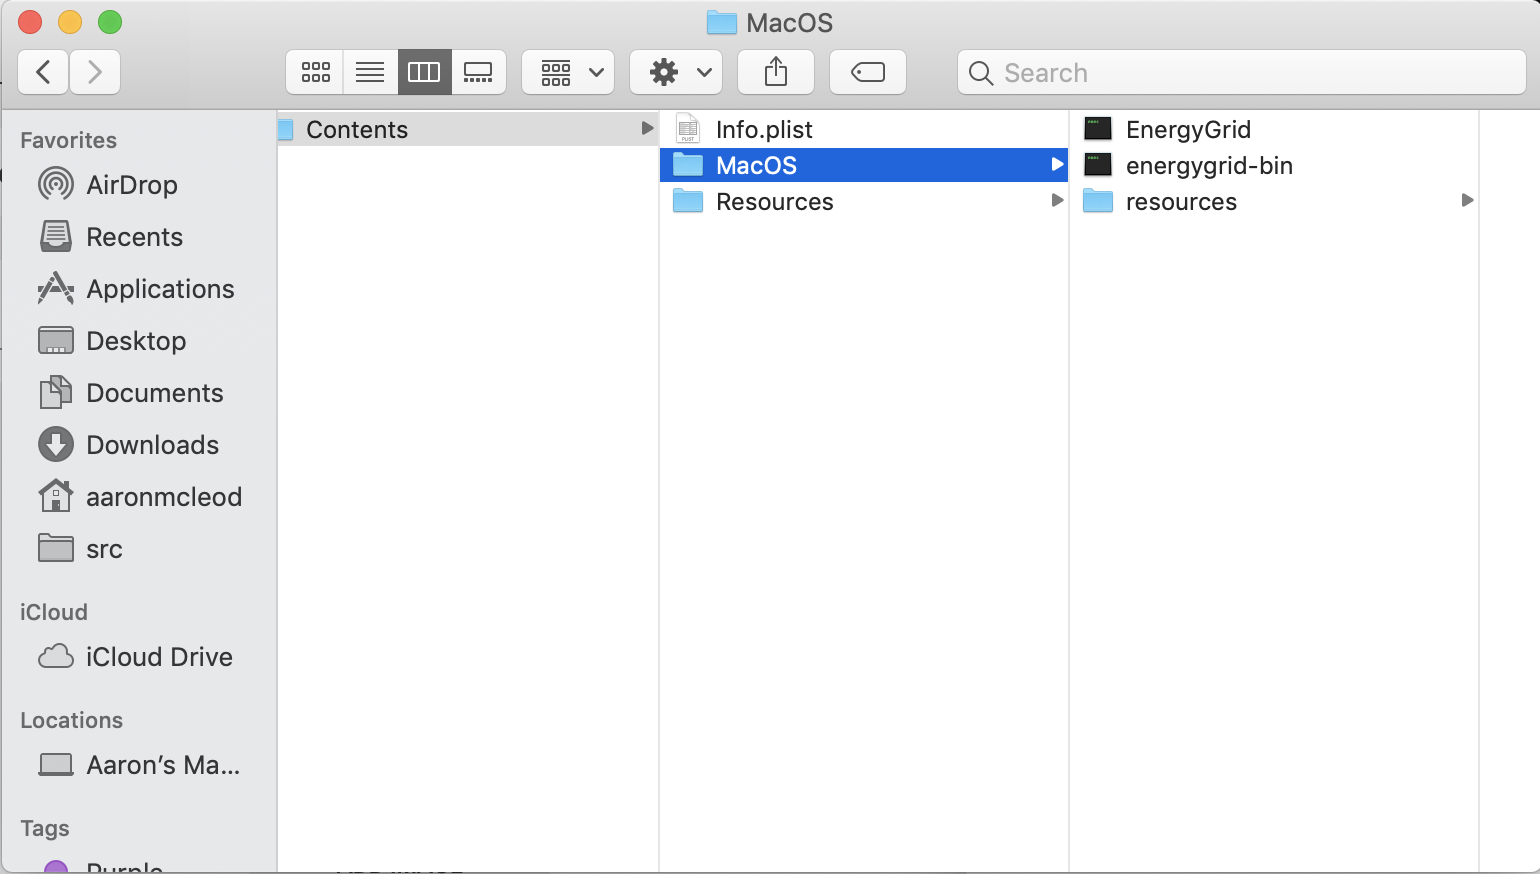 MacOS folder layout in Mac binary